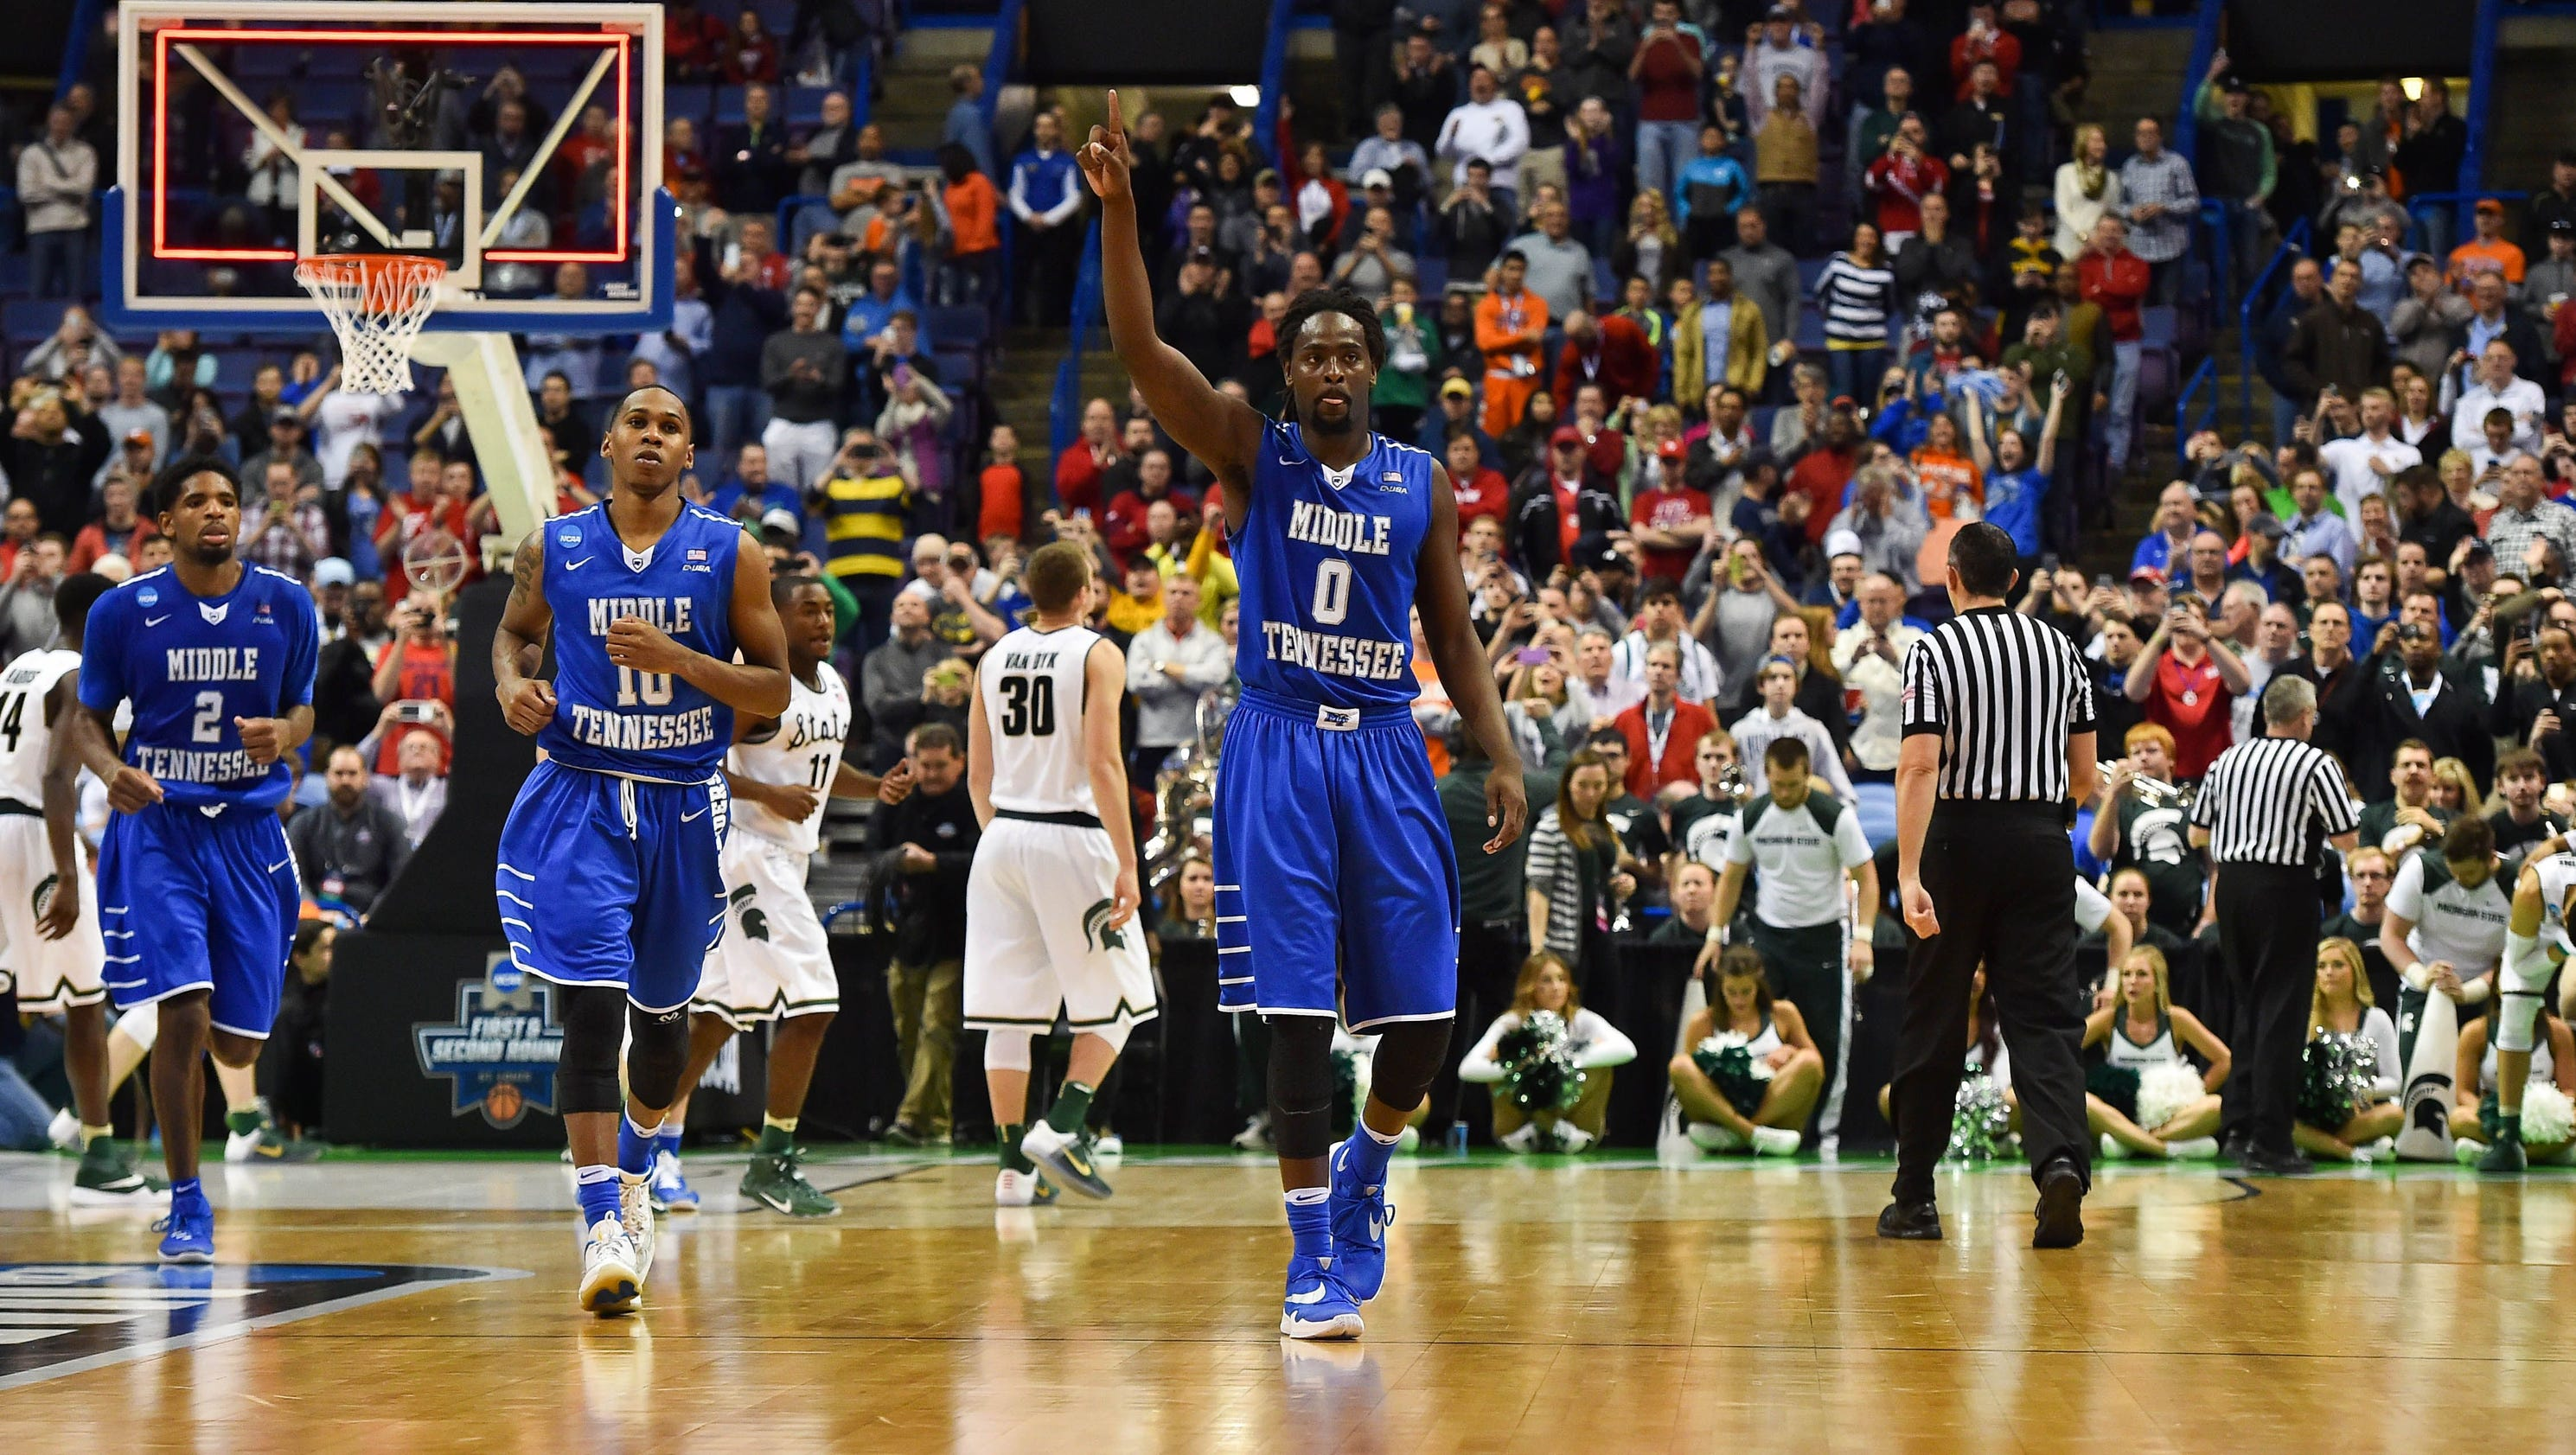 ncaa tournament teams bubble bracket basketball five upsets college sports bing azcentral ncaab round today usa usatoday upset